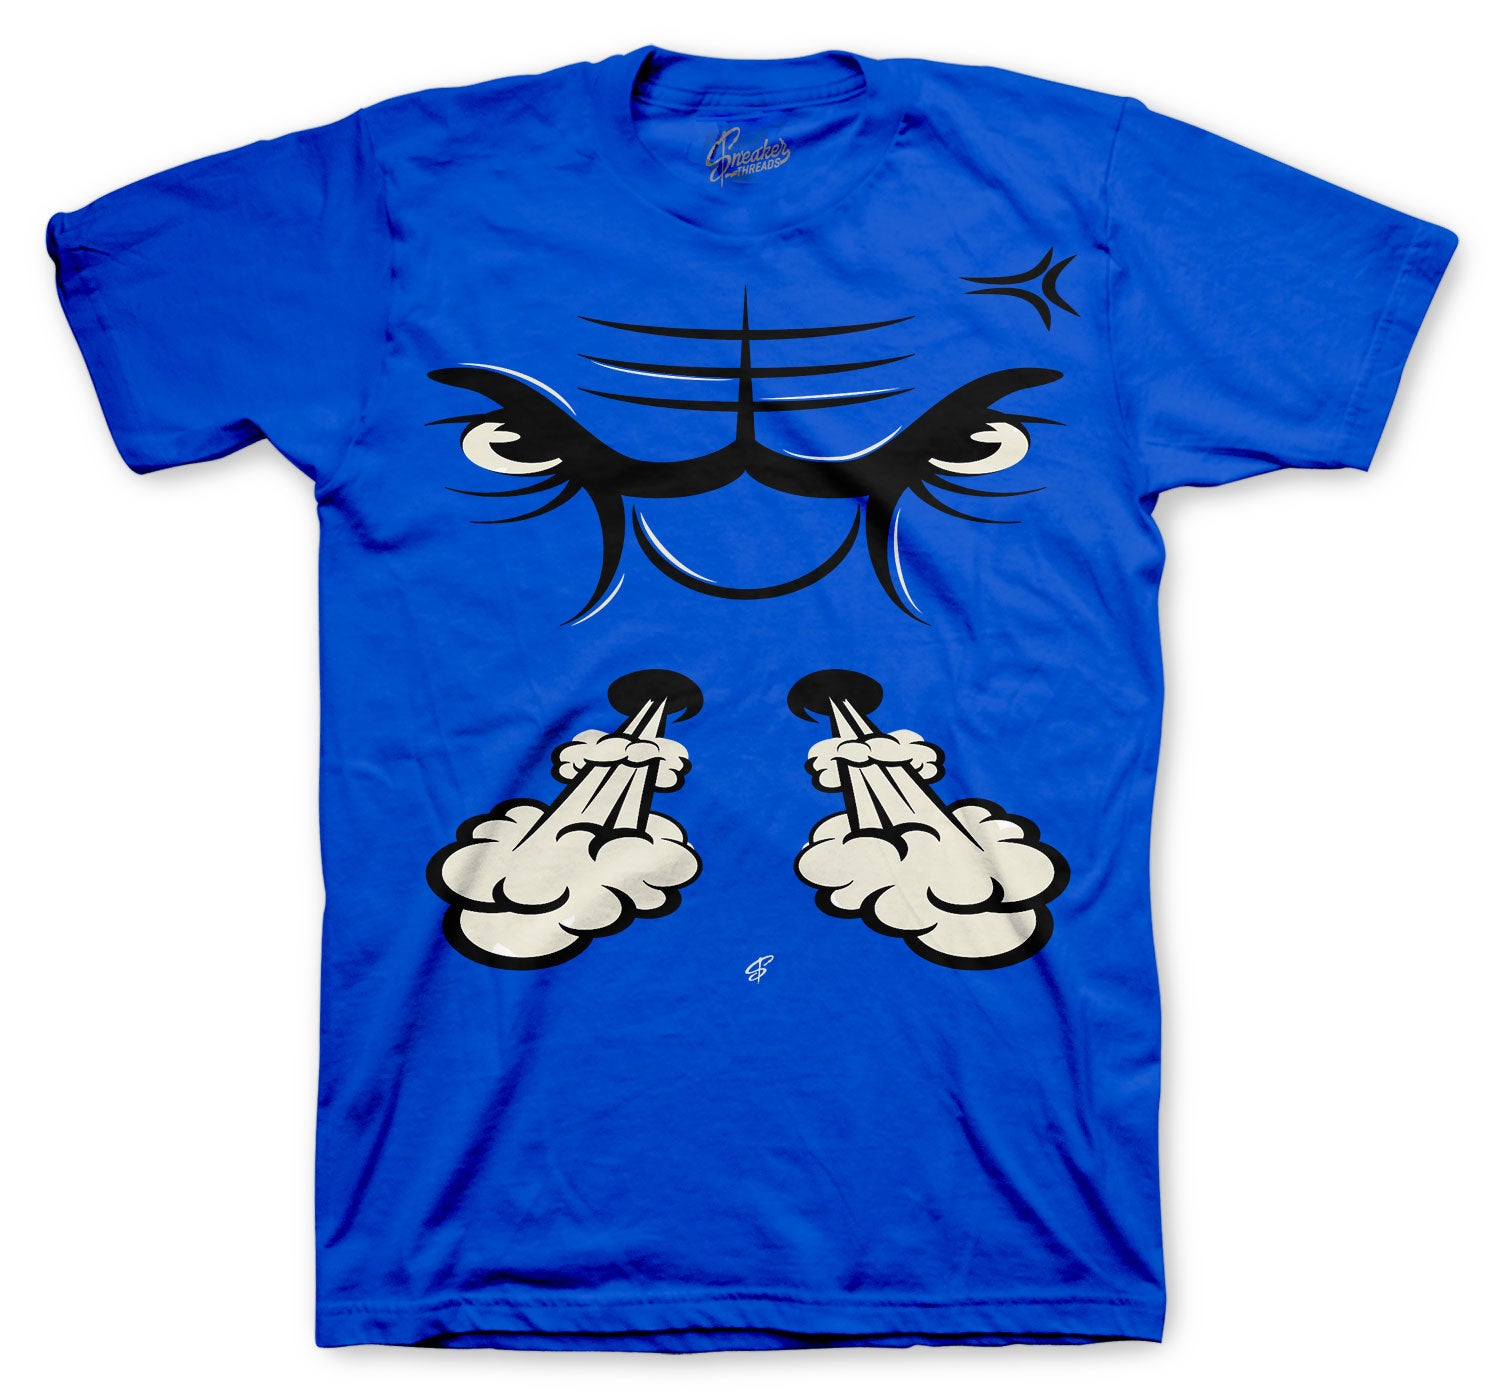 Jordan 13 Hyper Royal Shirt - Raging Face - Royal